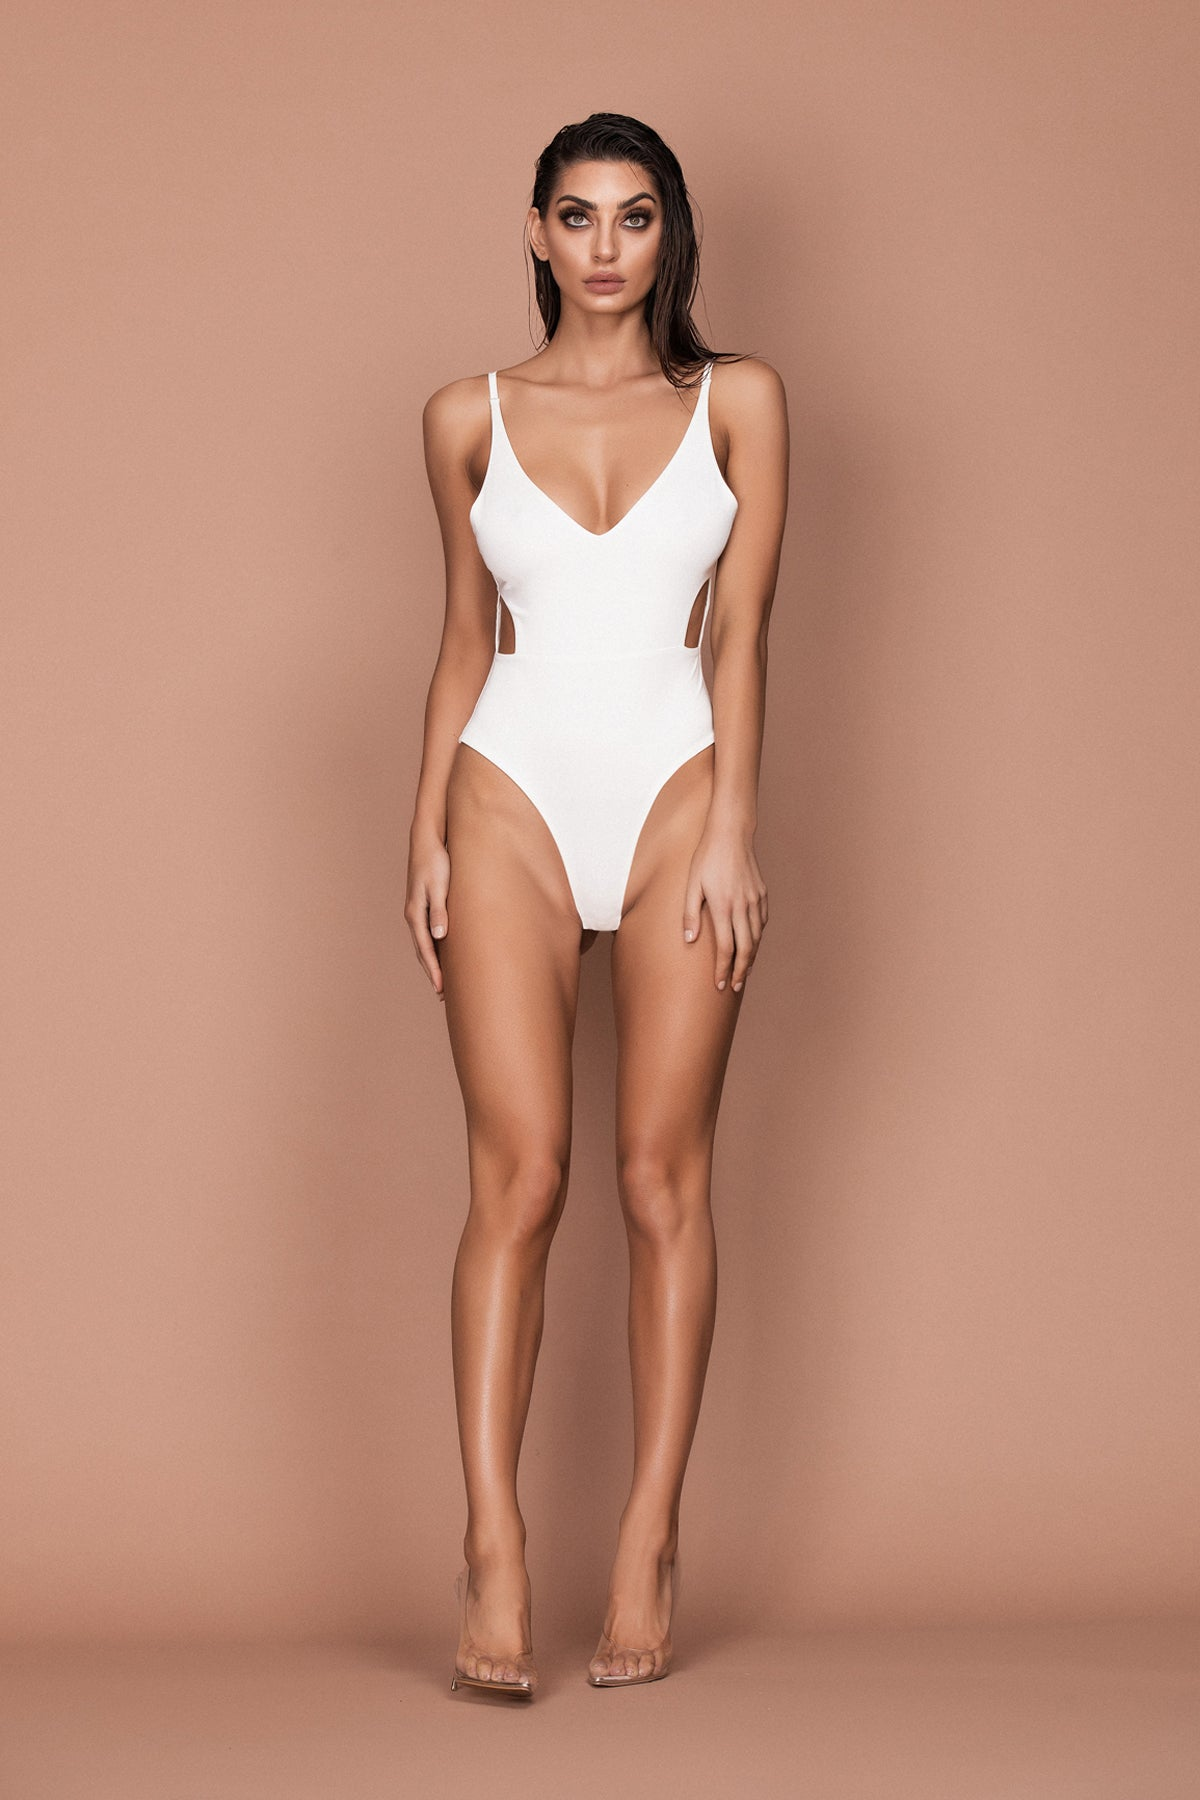 Hush Bodysuit (white) zoomed